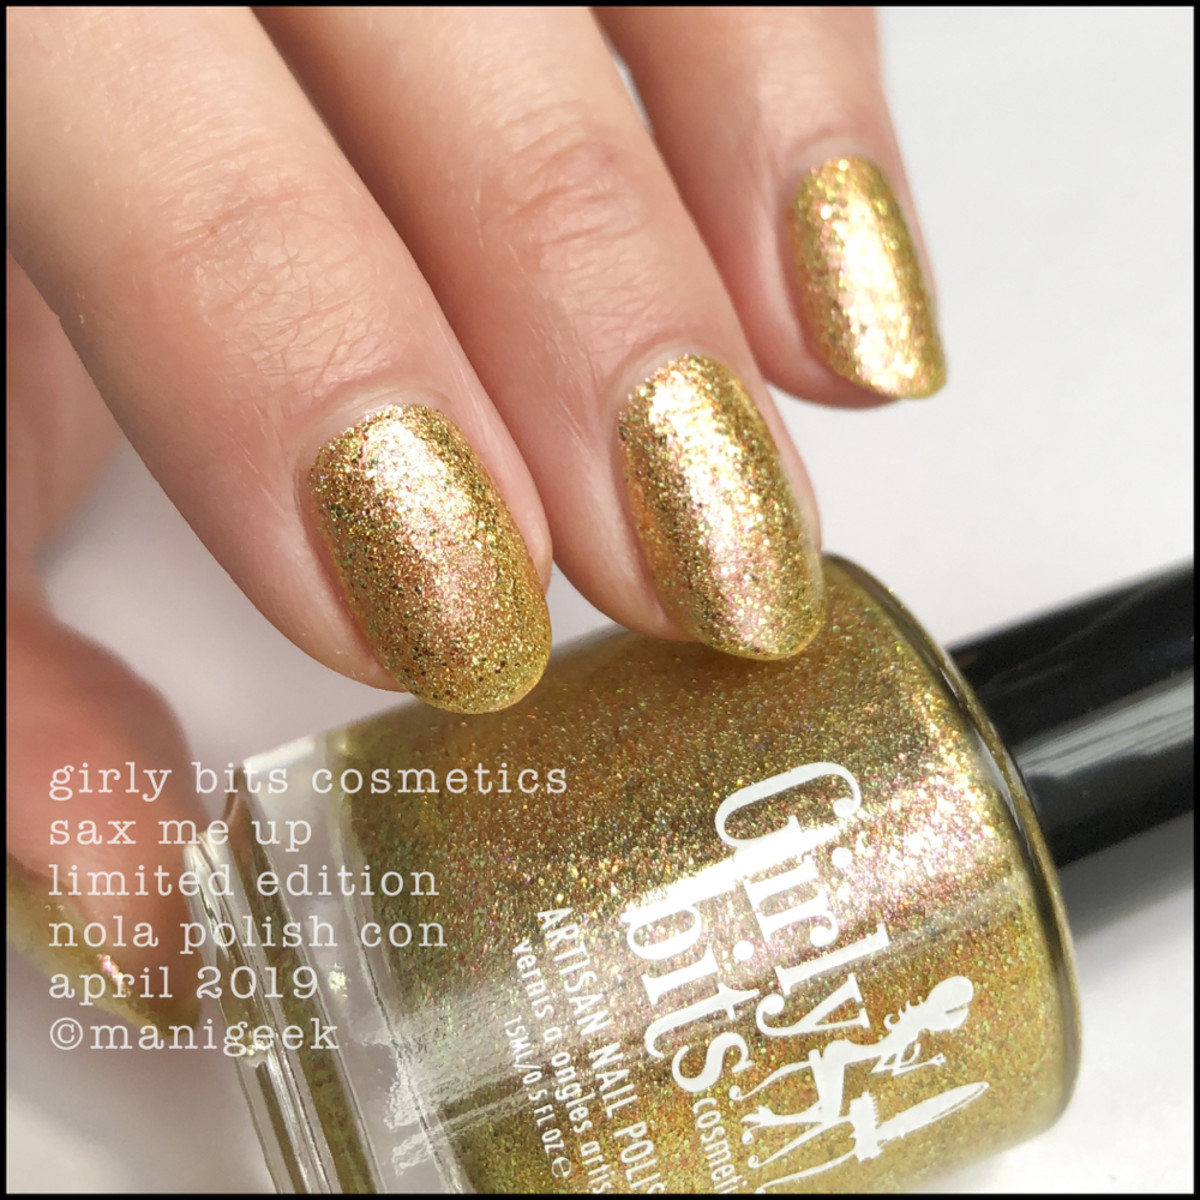 Girly Bits Sax Me Up - LE Girly Bits Polish Con NOLA April 2019